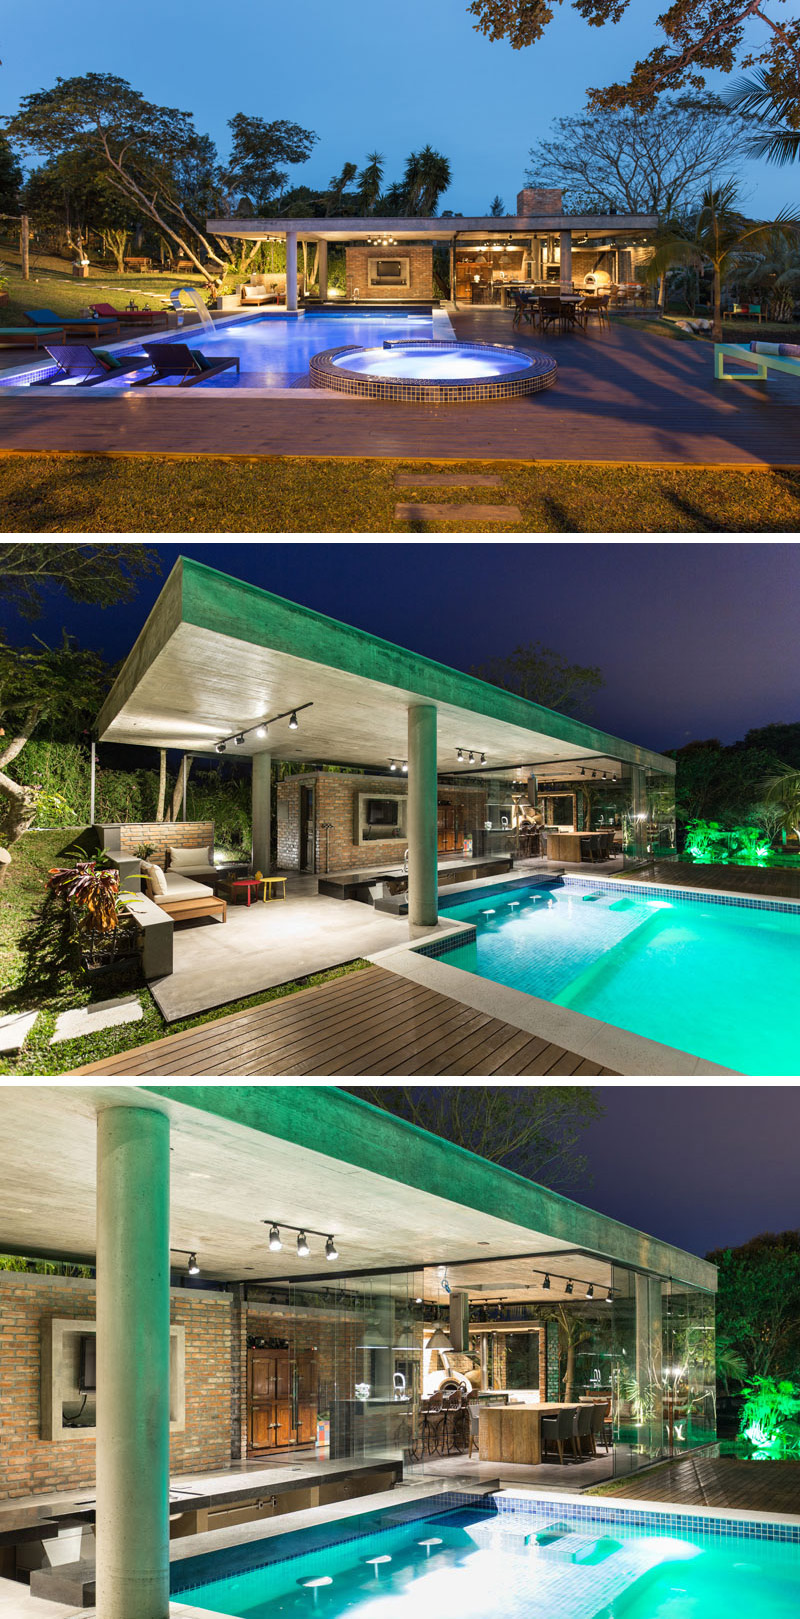 Made from concrete, brick, and glass, this modern pool house is made for entertaining. There's a full kitchen, swim up bar, and multiple seating arrangements surrounding the pool.